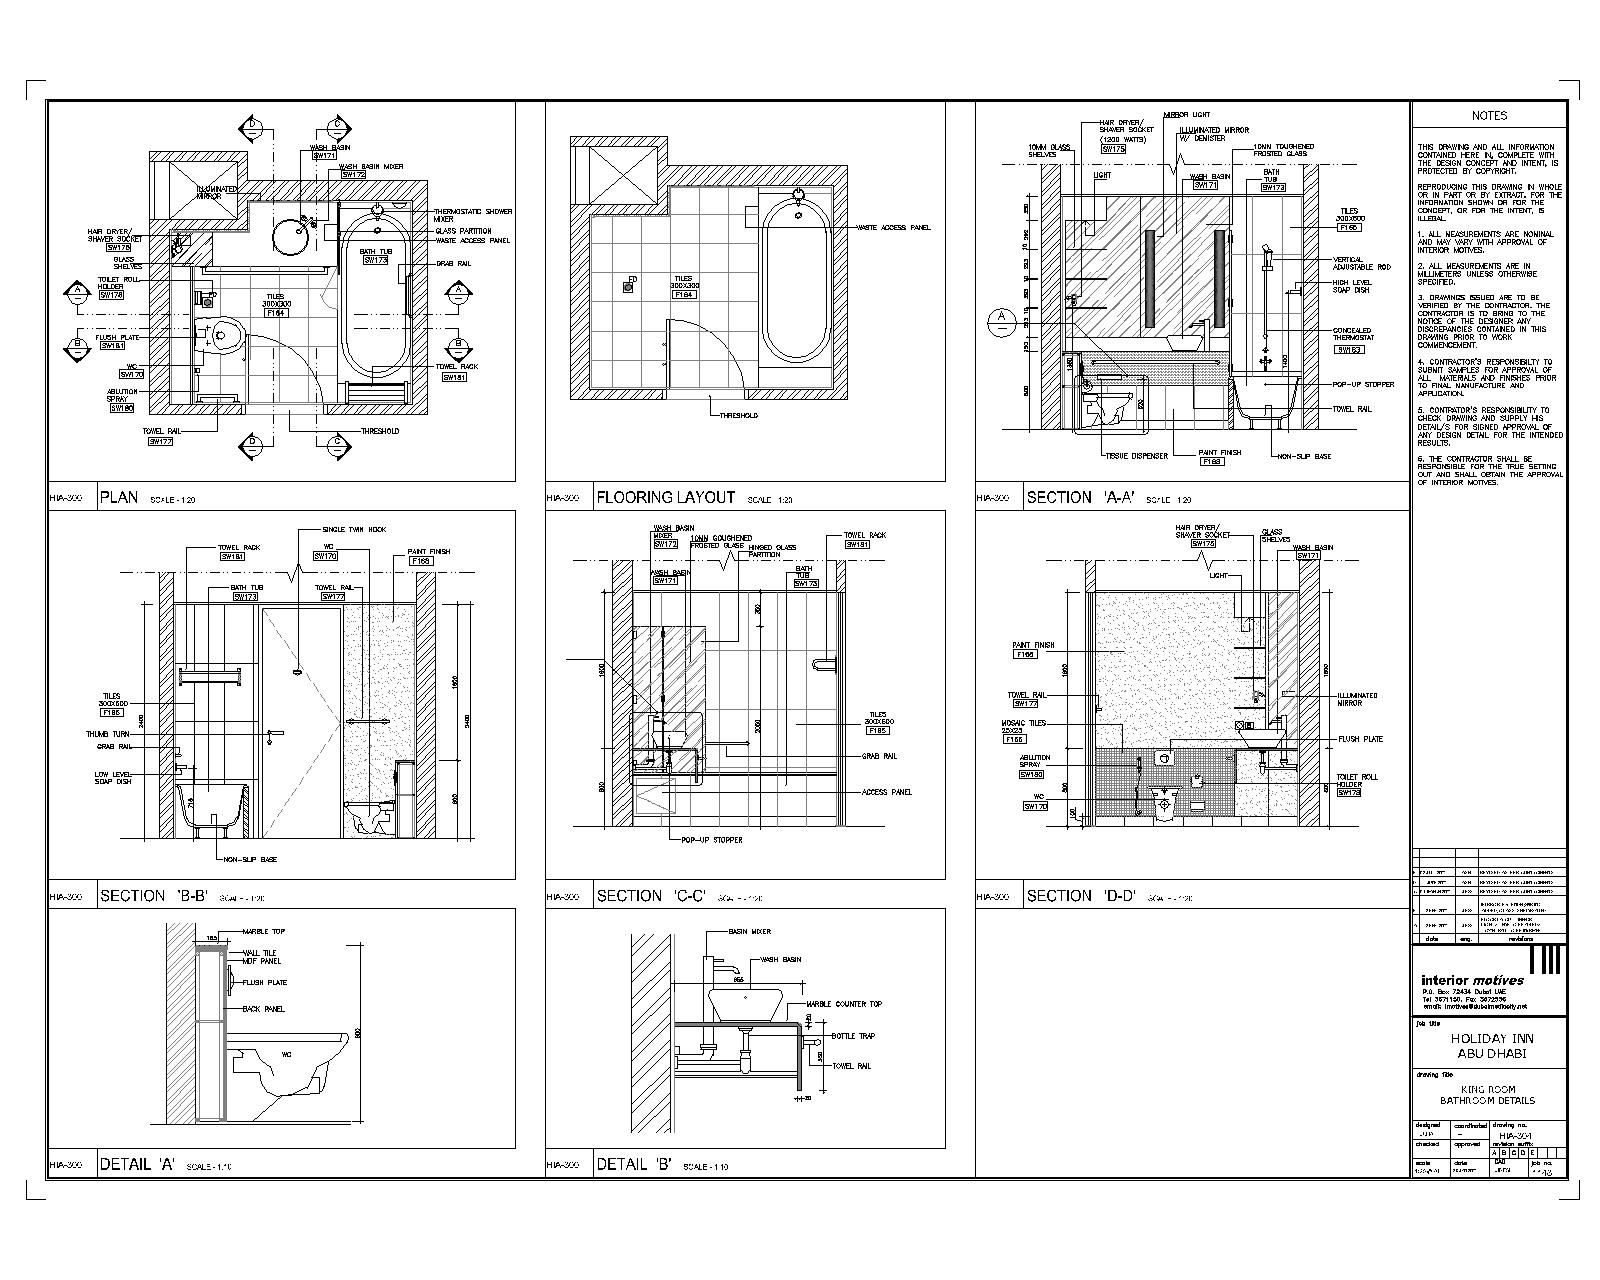 Autocad drawings detail by ashik ahammed at coroflot for Construction plan drawing